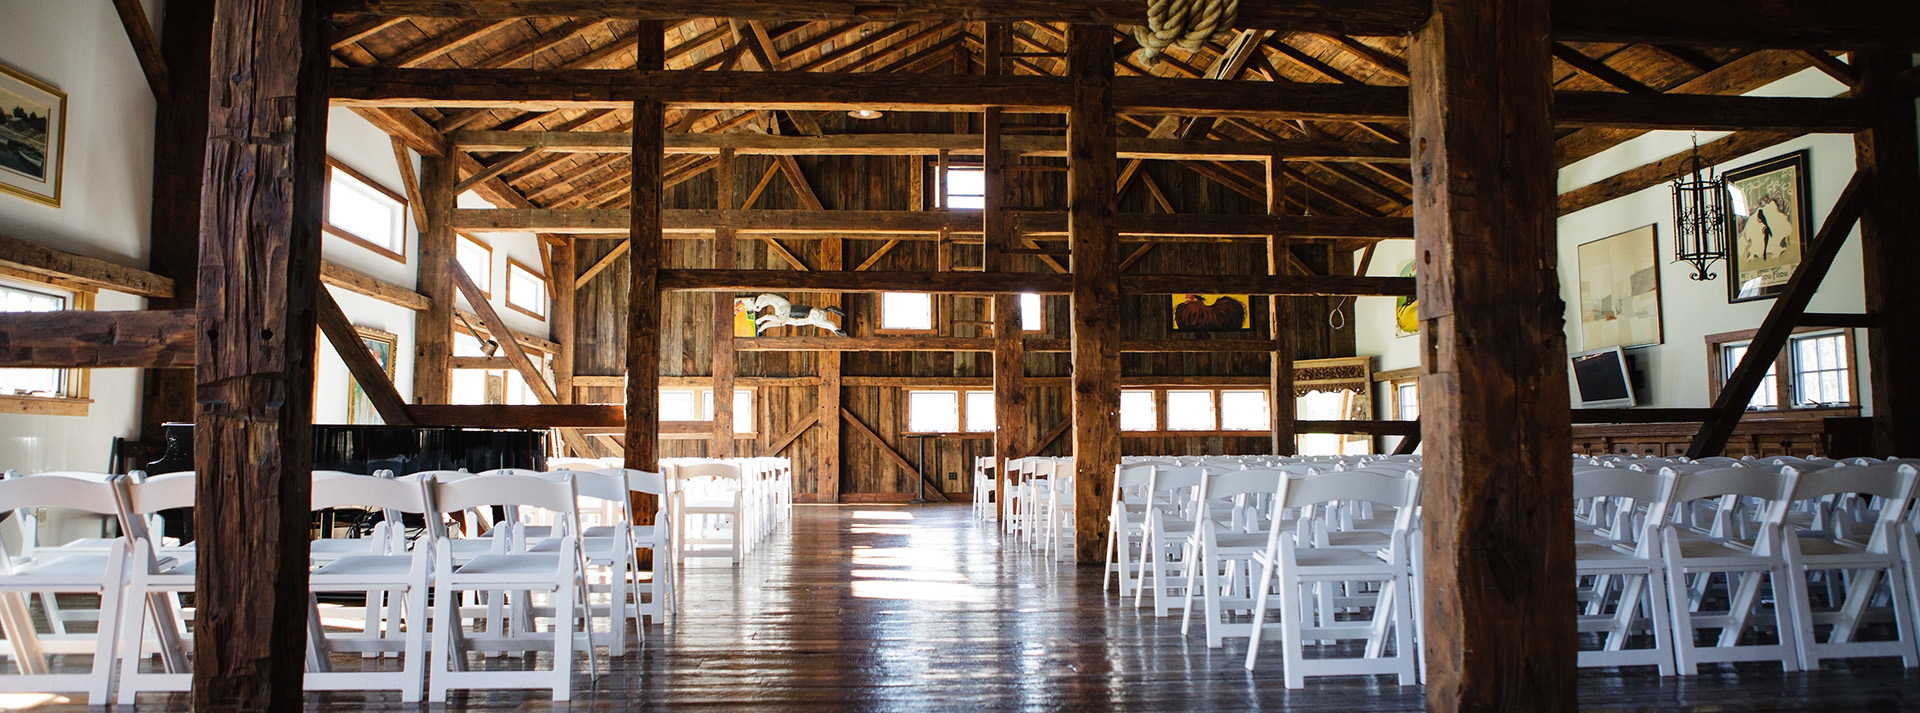 Six Beautifully Restored Barns For The Perfect Vermont Wedding